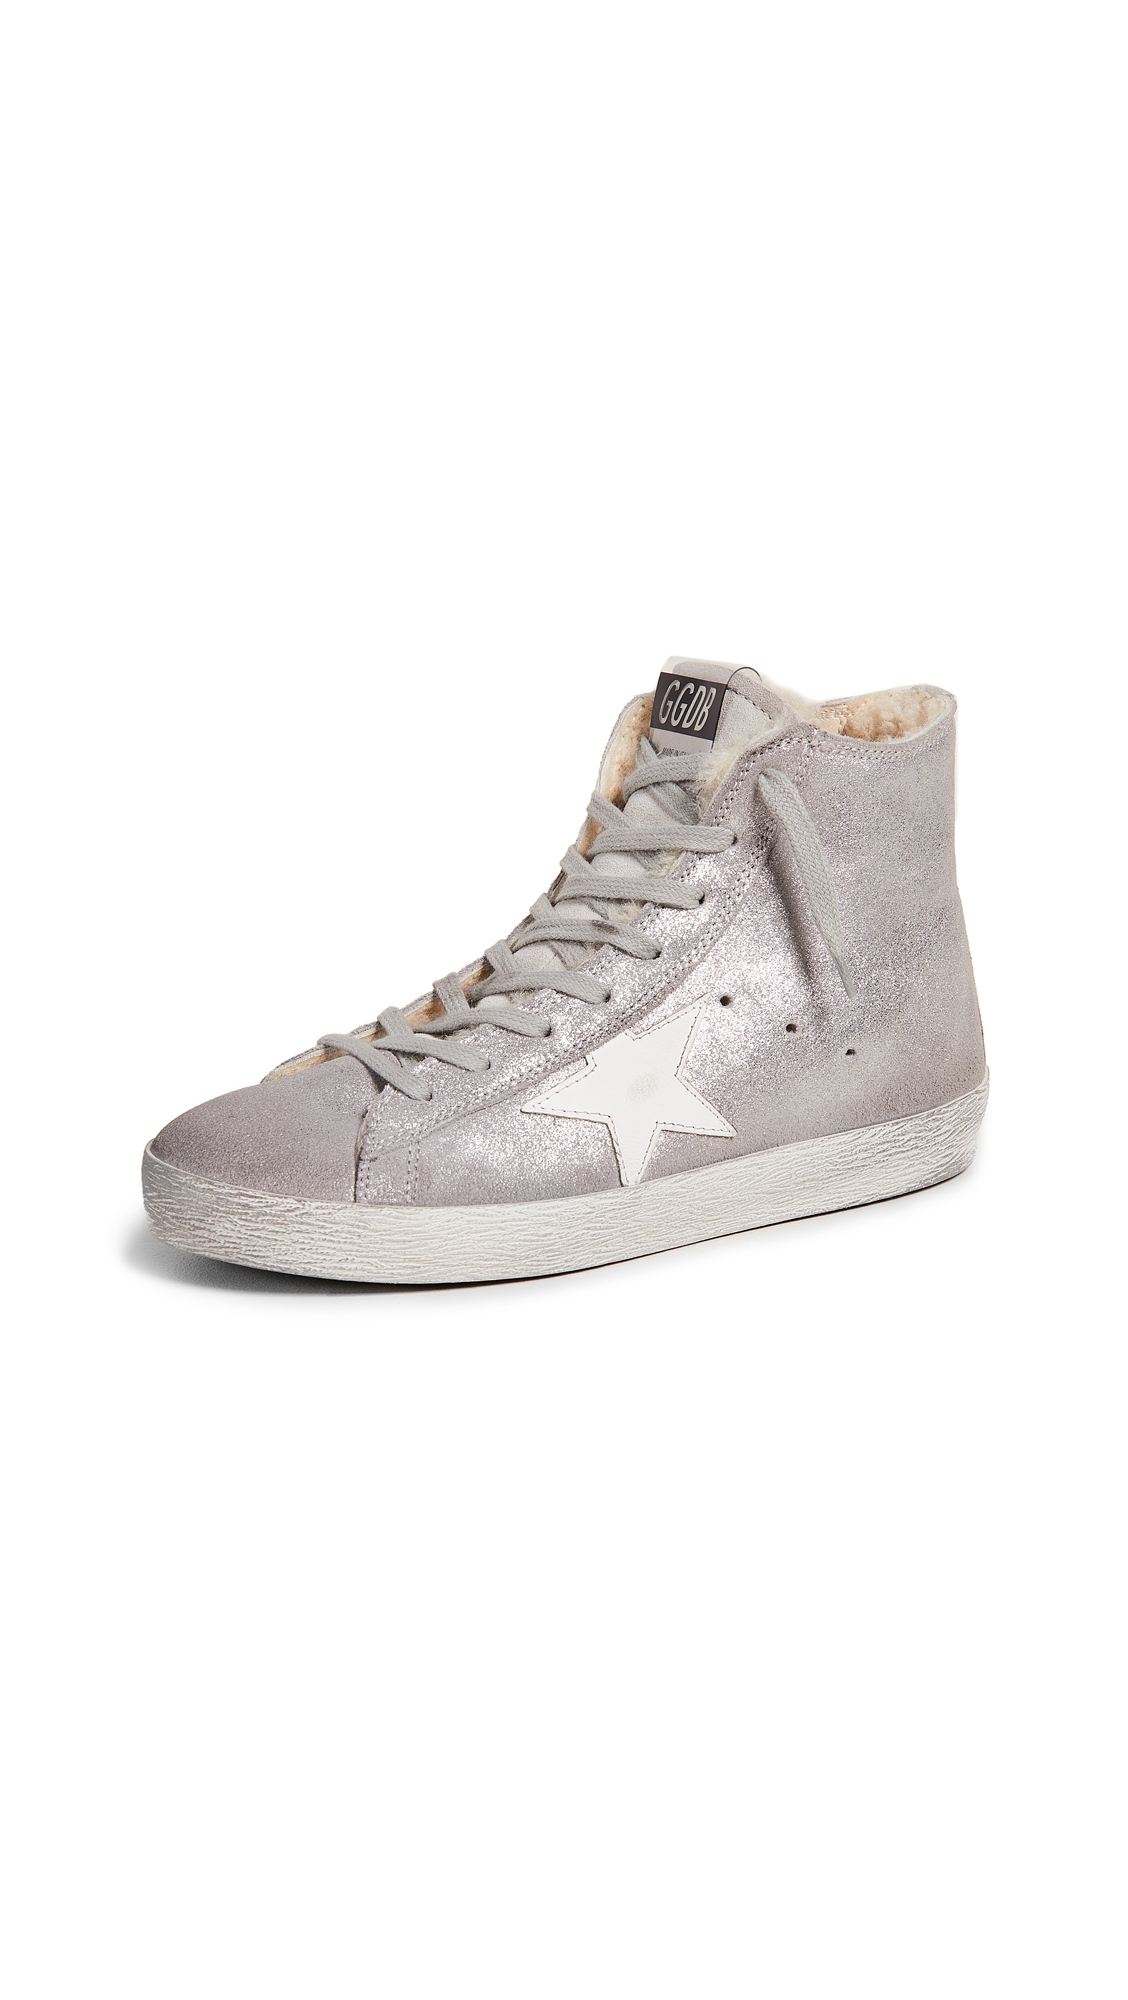 Golden Goose Francy Sneakers - Silver/White